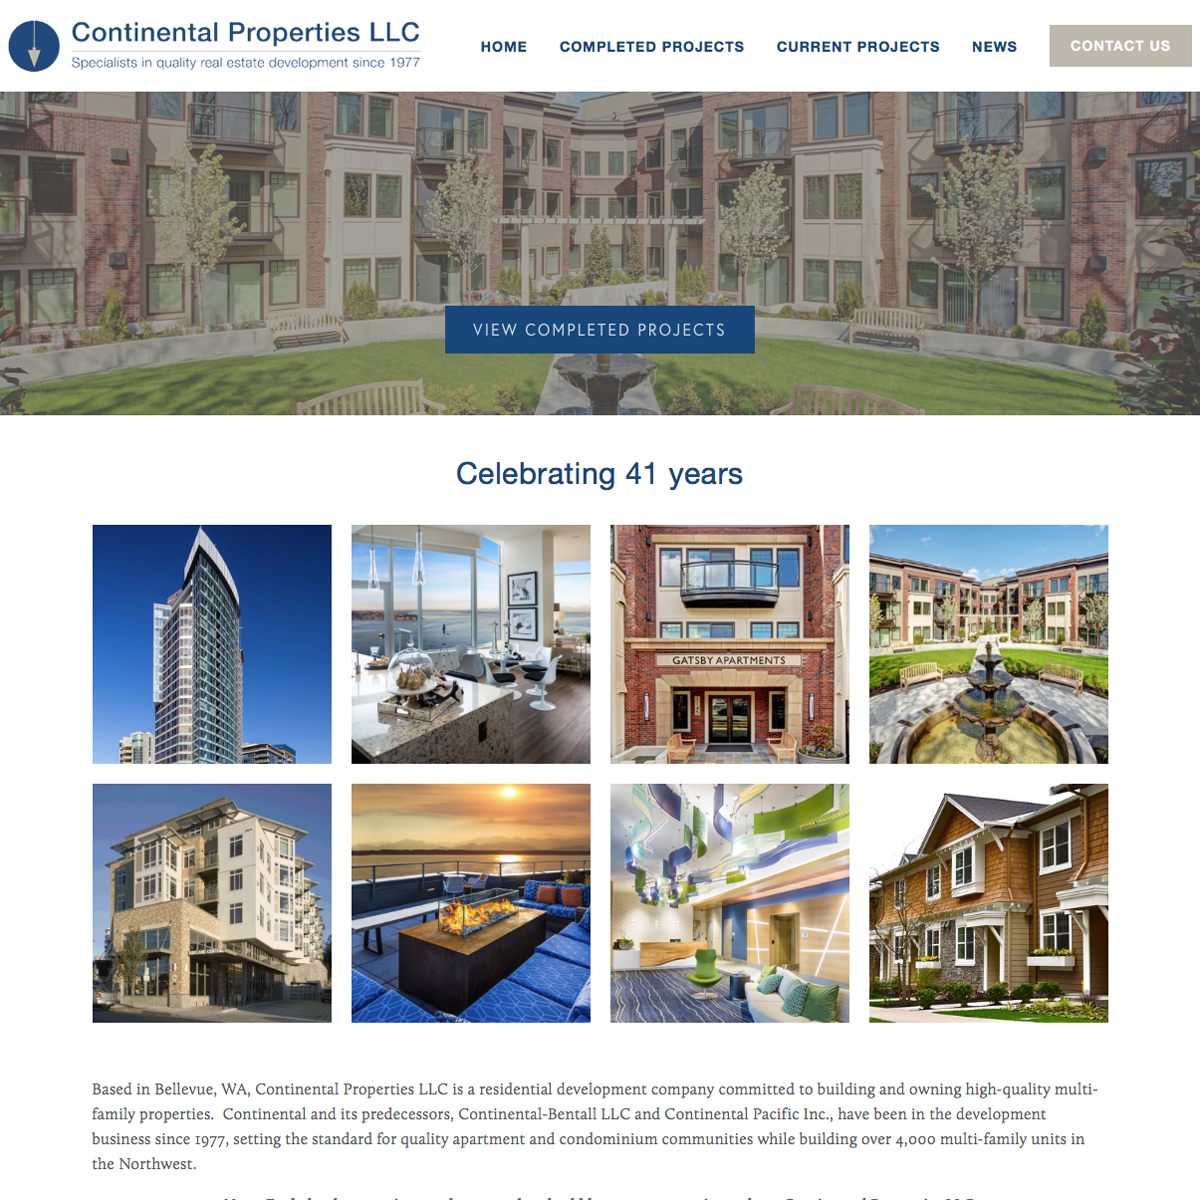 Continental Properties